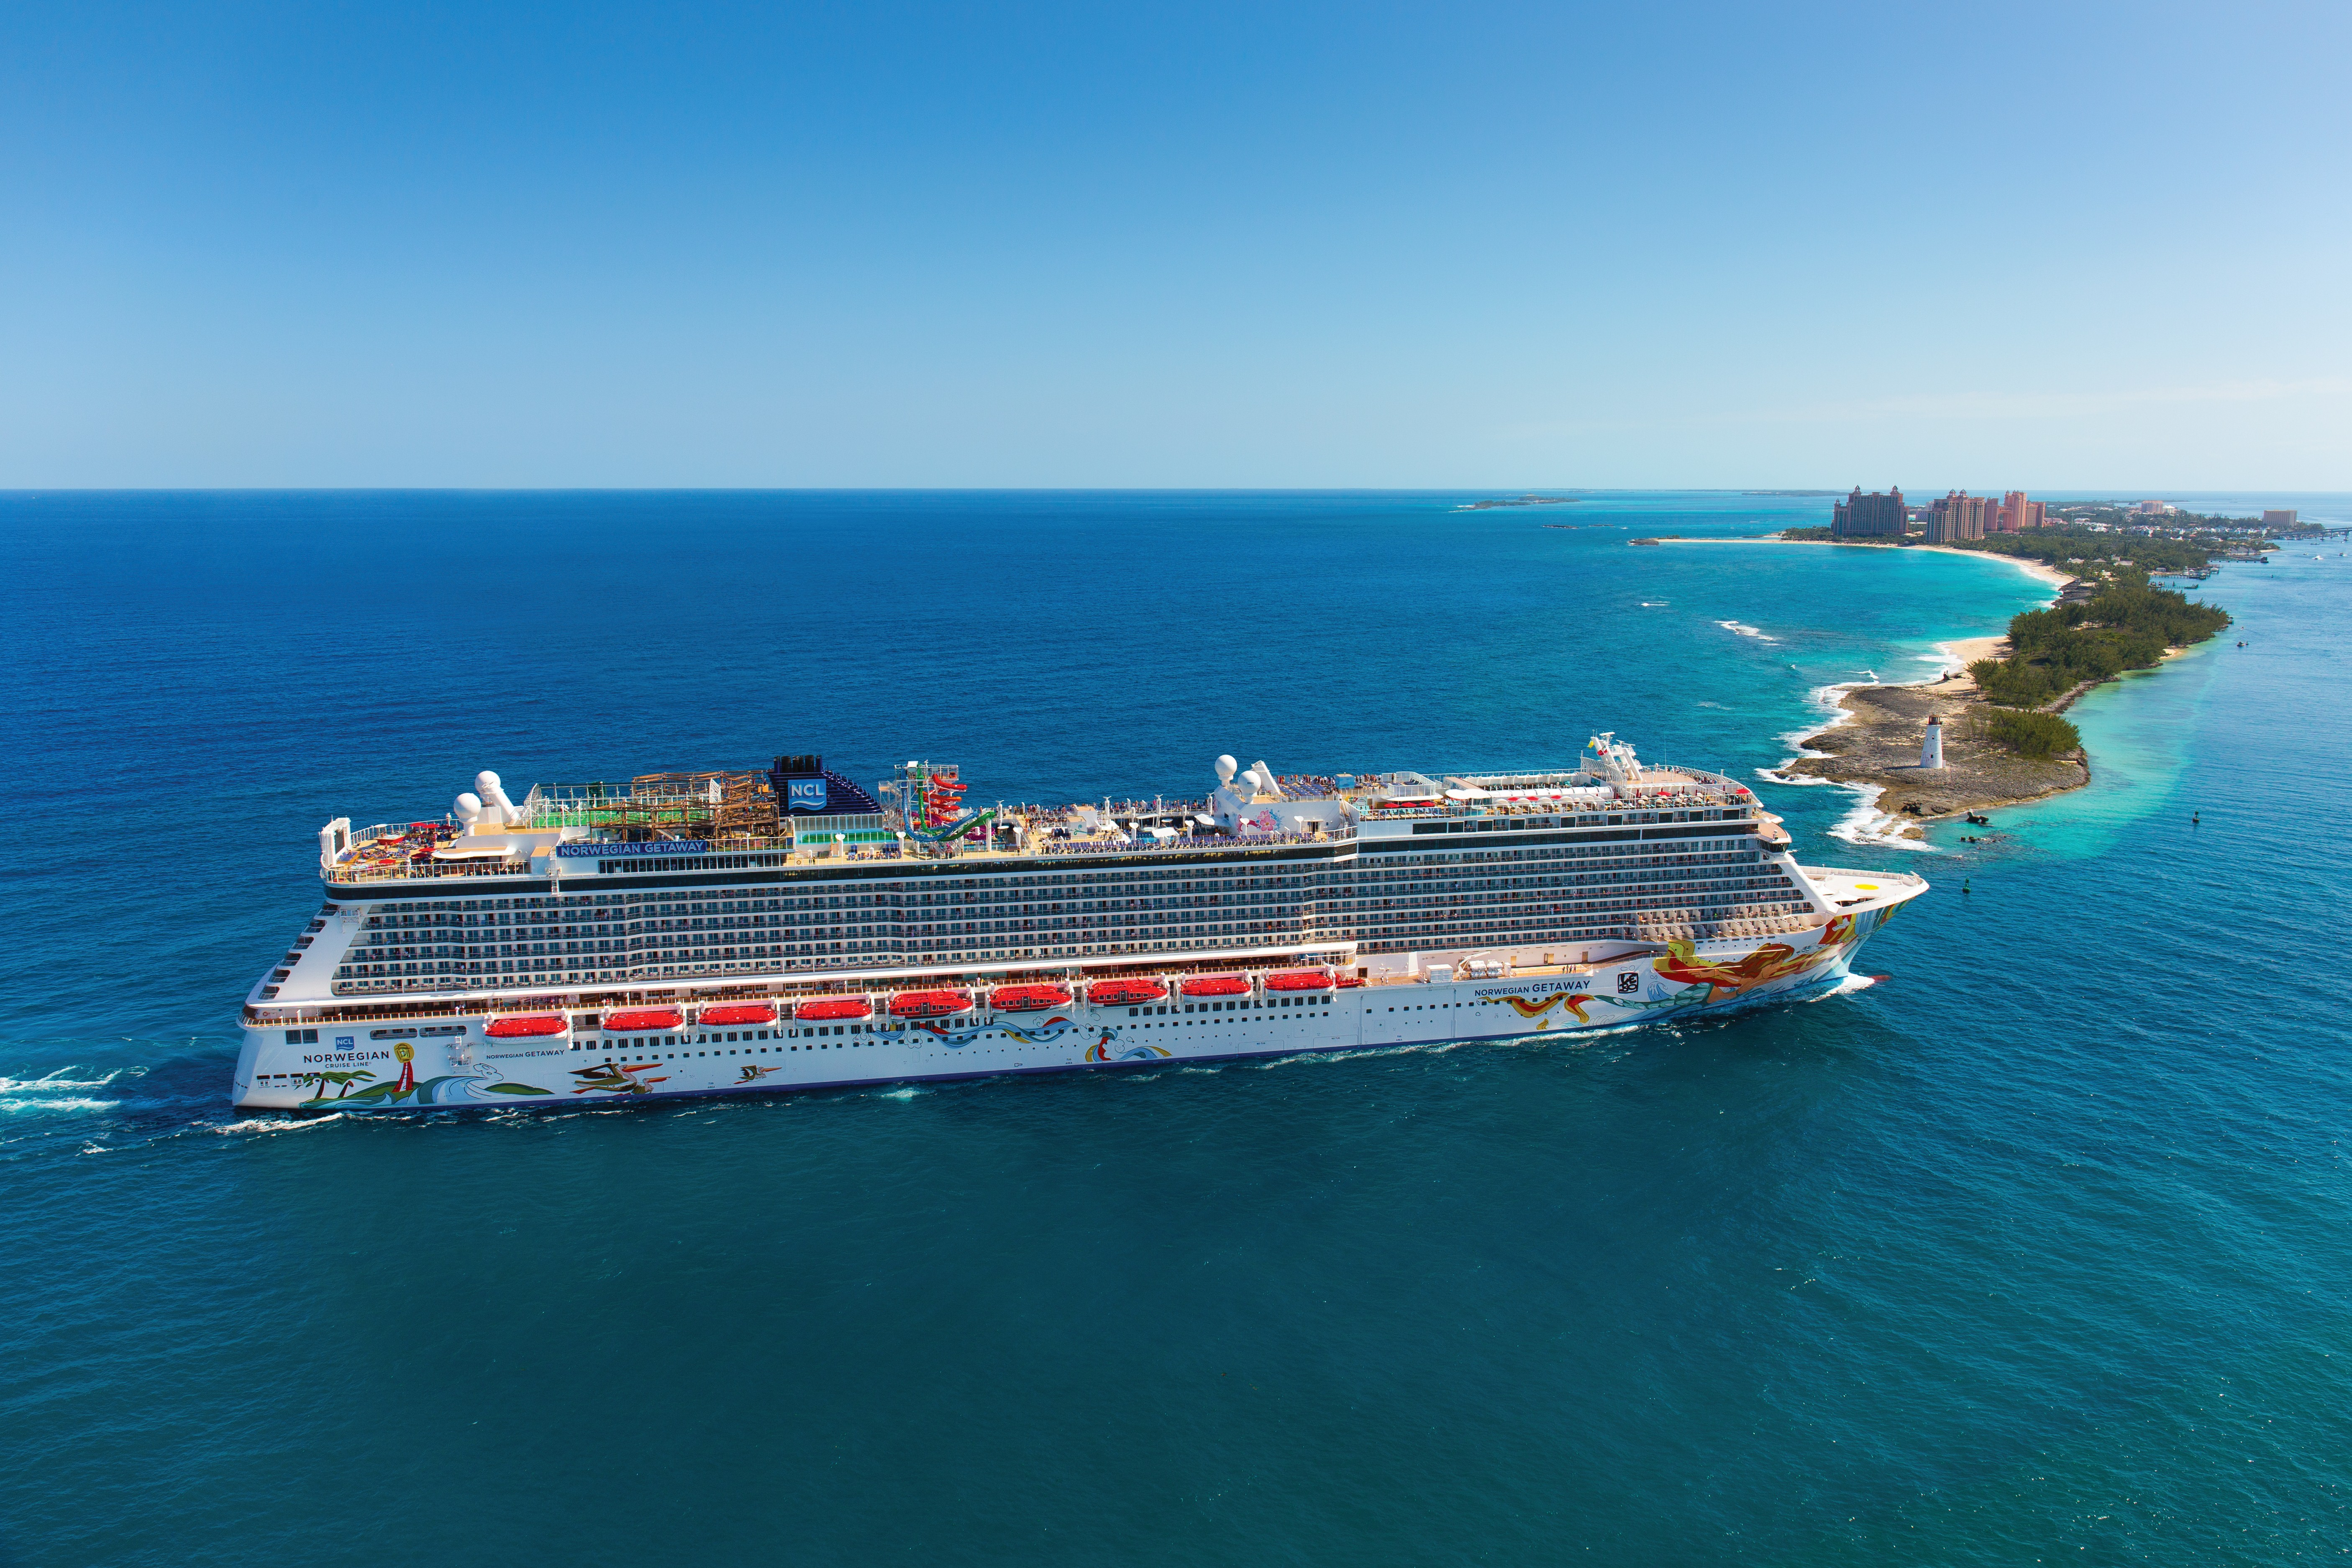 Find Paradise on the High Seas with NCL!